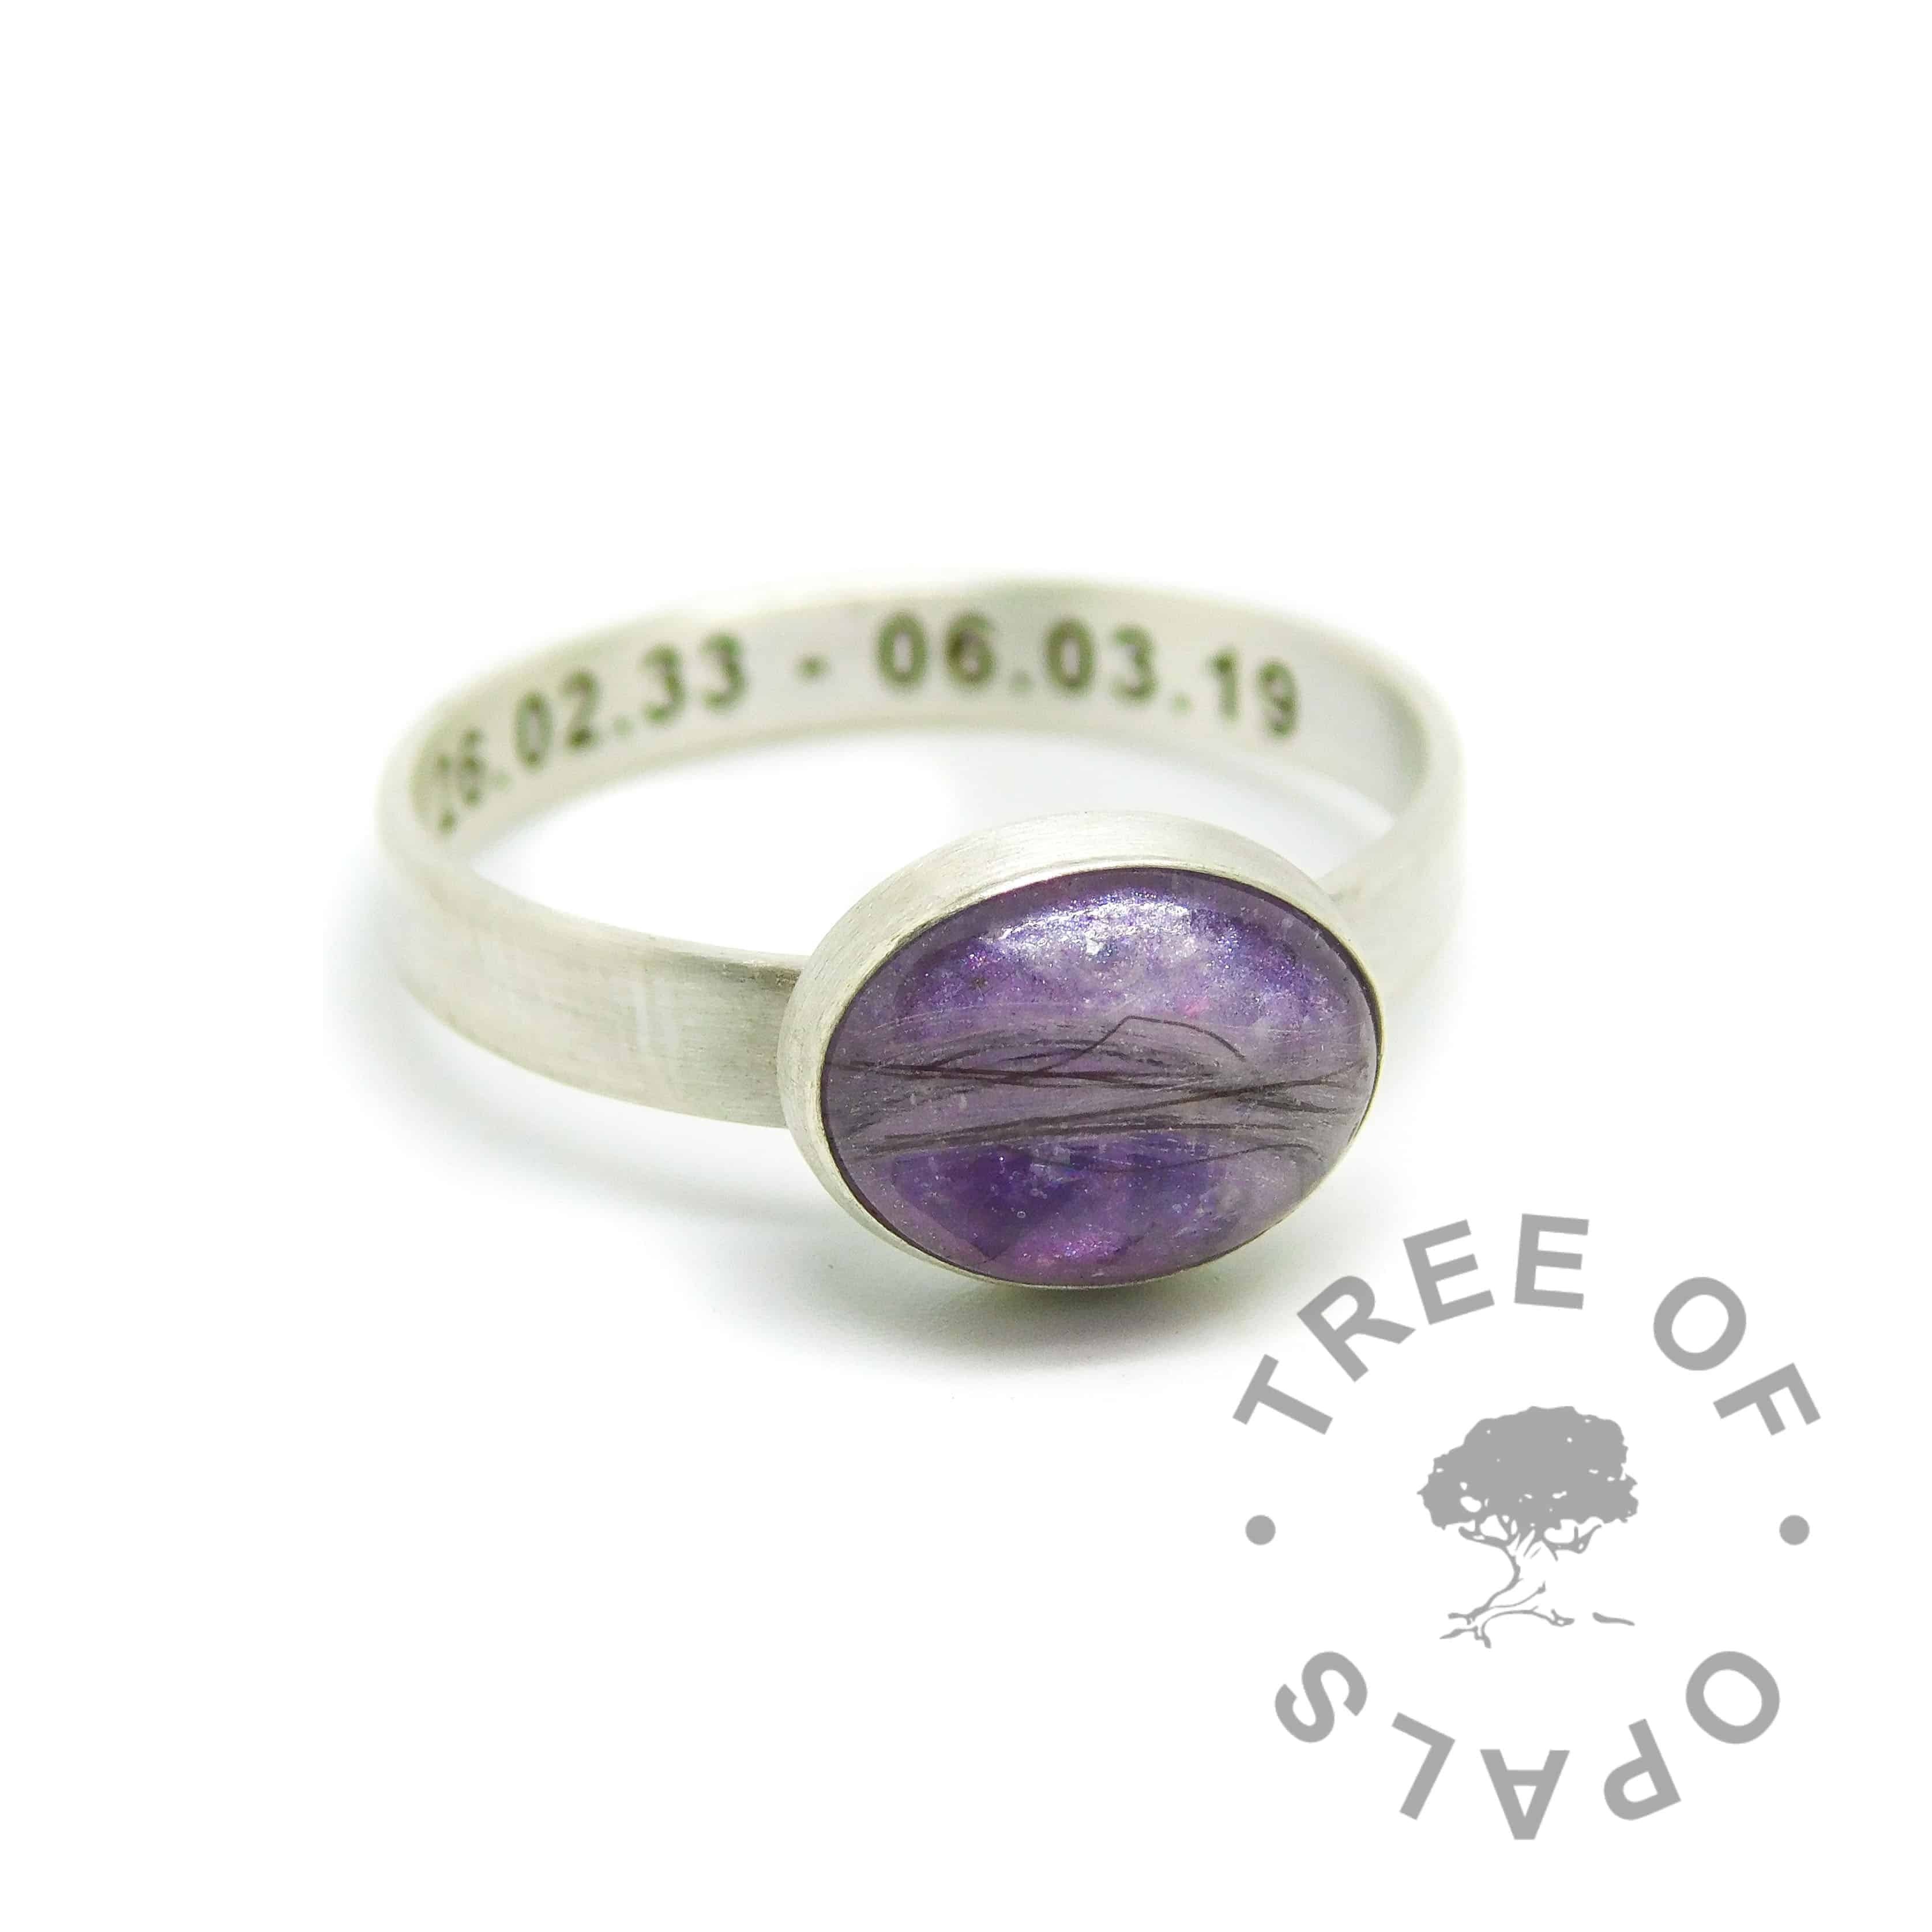 lock of ring with orchid purple resin sparkle mix, rough natural amethyst February birthstone. Handmade 3mm brushed engraved EcoSilver ring shank, 10x8mm bezel cup. Watermarked copyright Tree of Opals memorial jewellery image